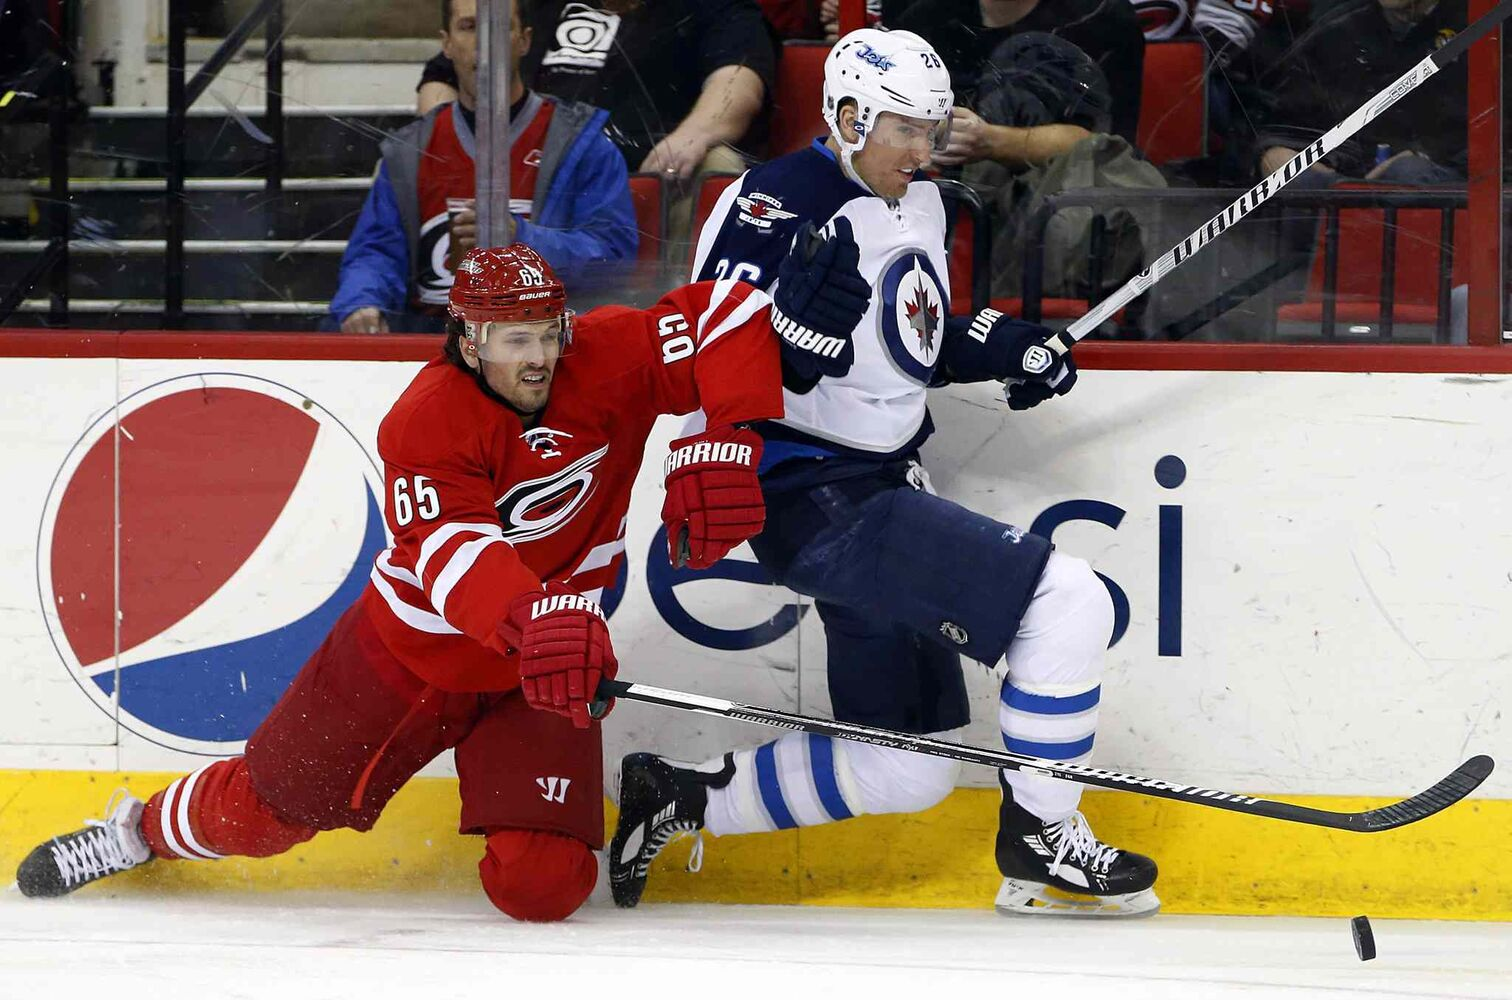 Winnipeg Jets' Blake Wheeler (26) and Carolina Hurricanes' Ron Hainsey (65) collide along the boards during the first period of Tuesday's game.